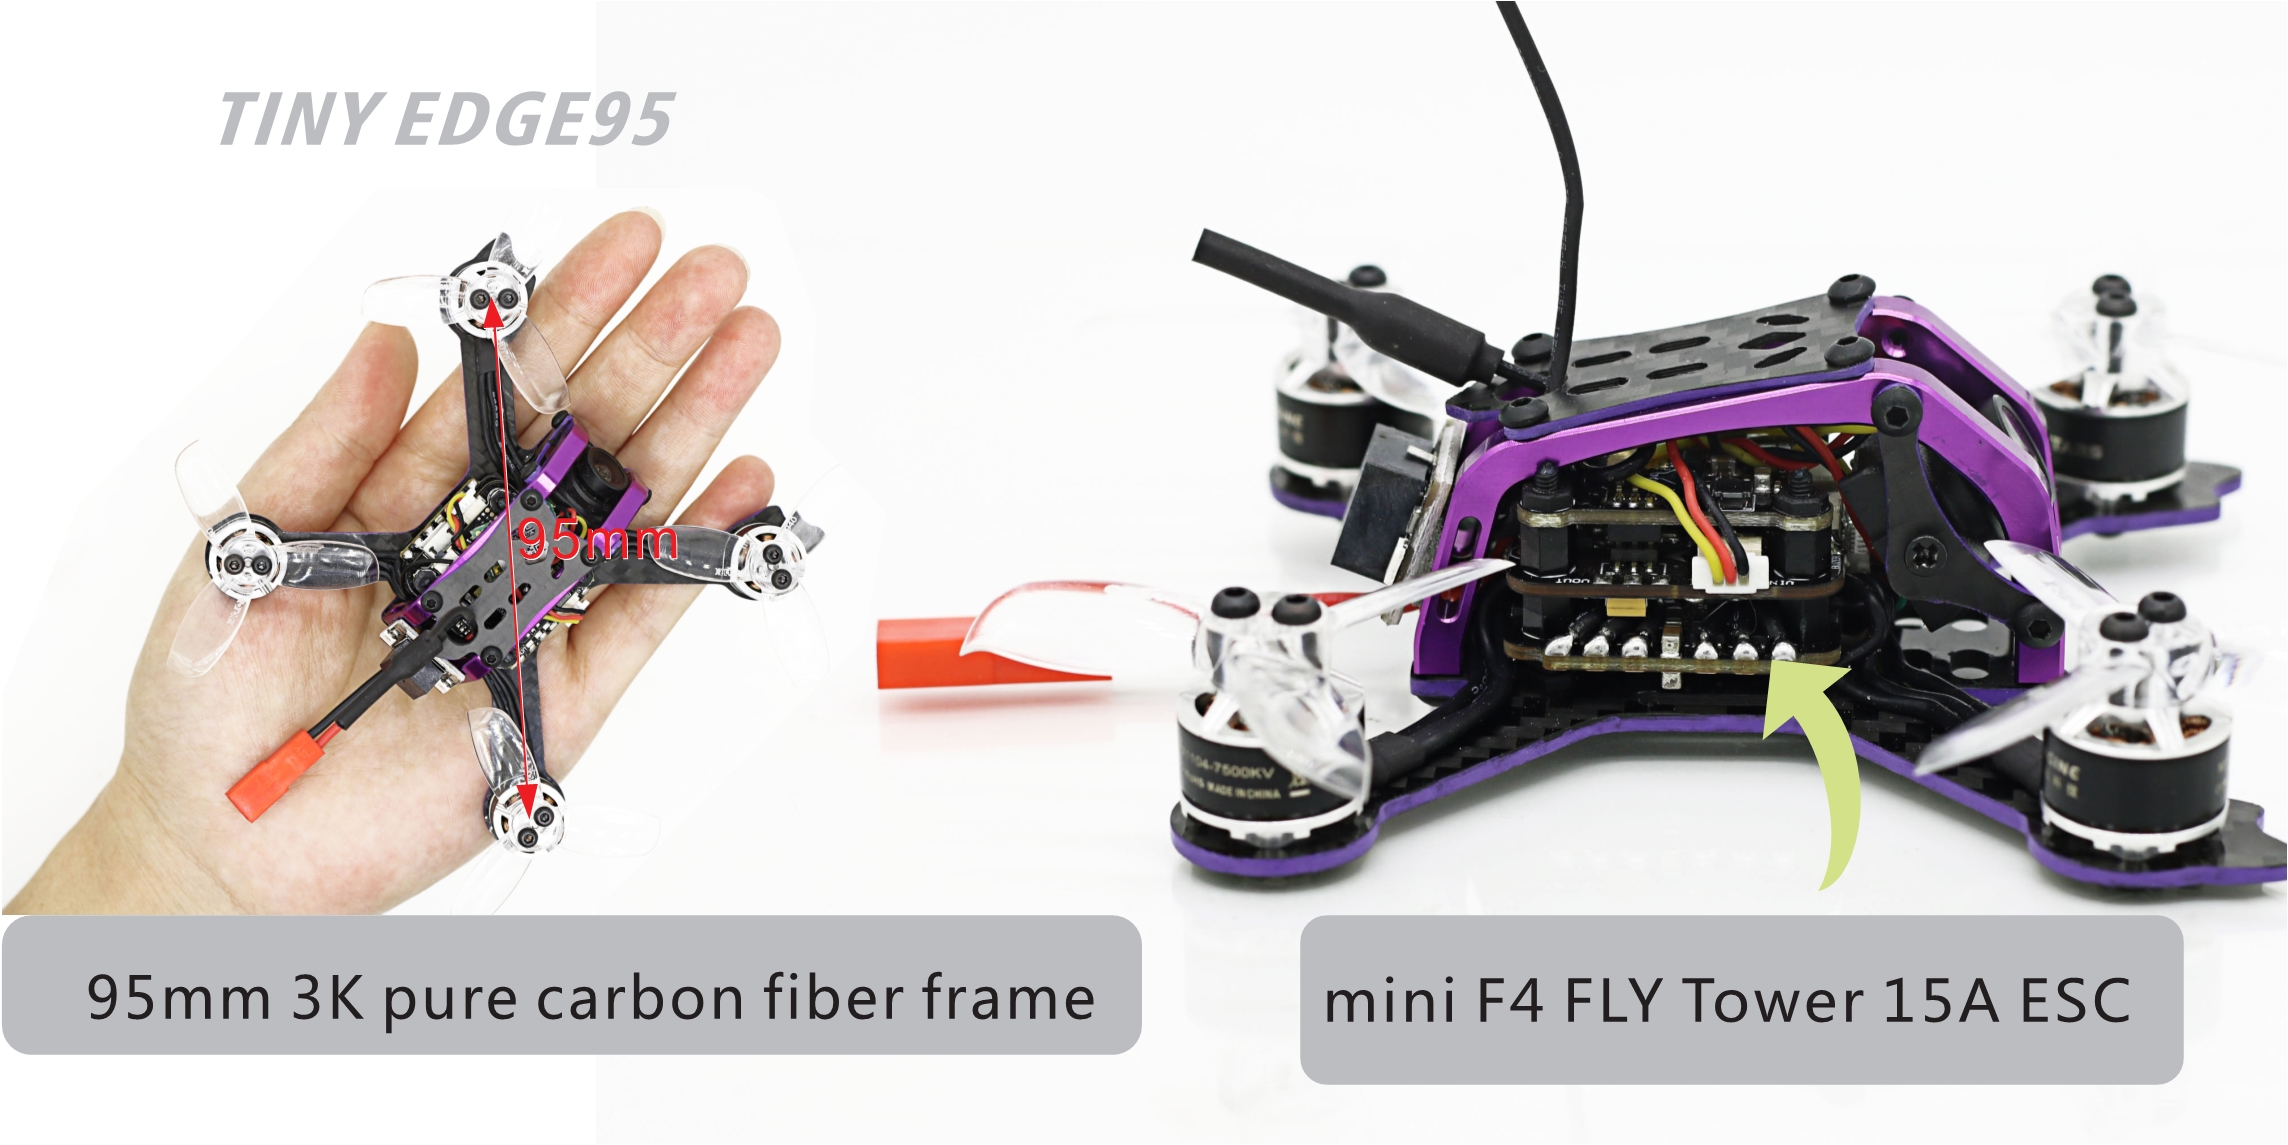 SKYSTARS Little Edge 95mm RC FPV Racing Drone PNP BNF W/ Micro F4 15A BLheli_S 800TVL 150mW 40CH VTX - Photo: 8